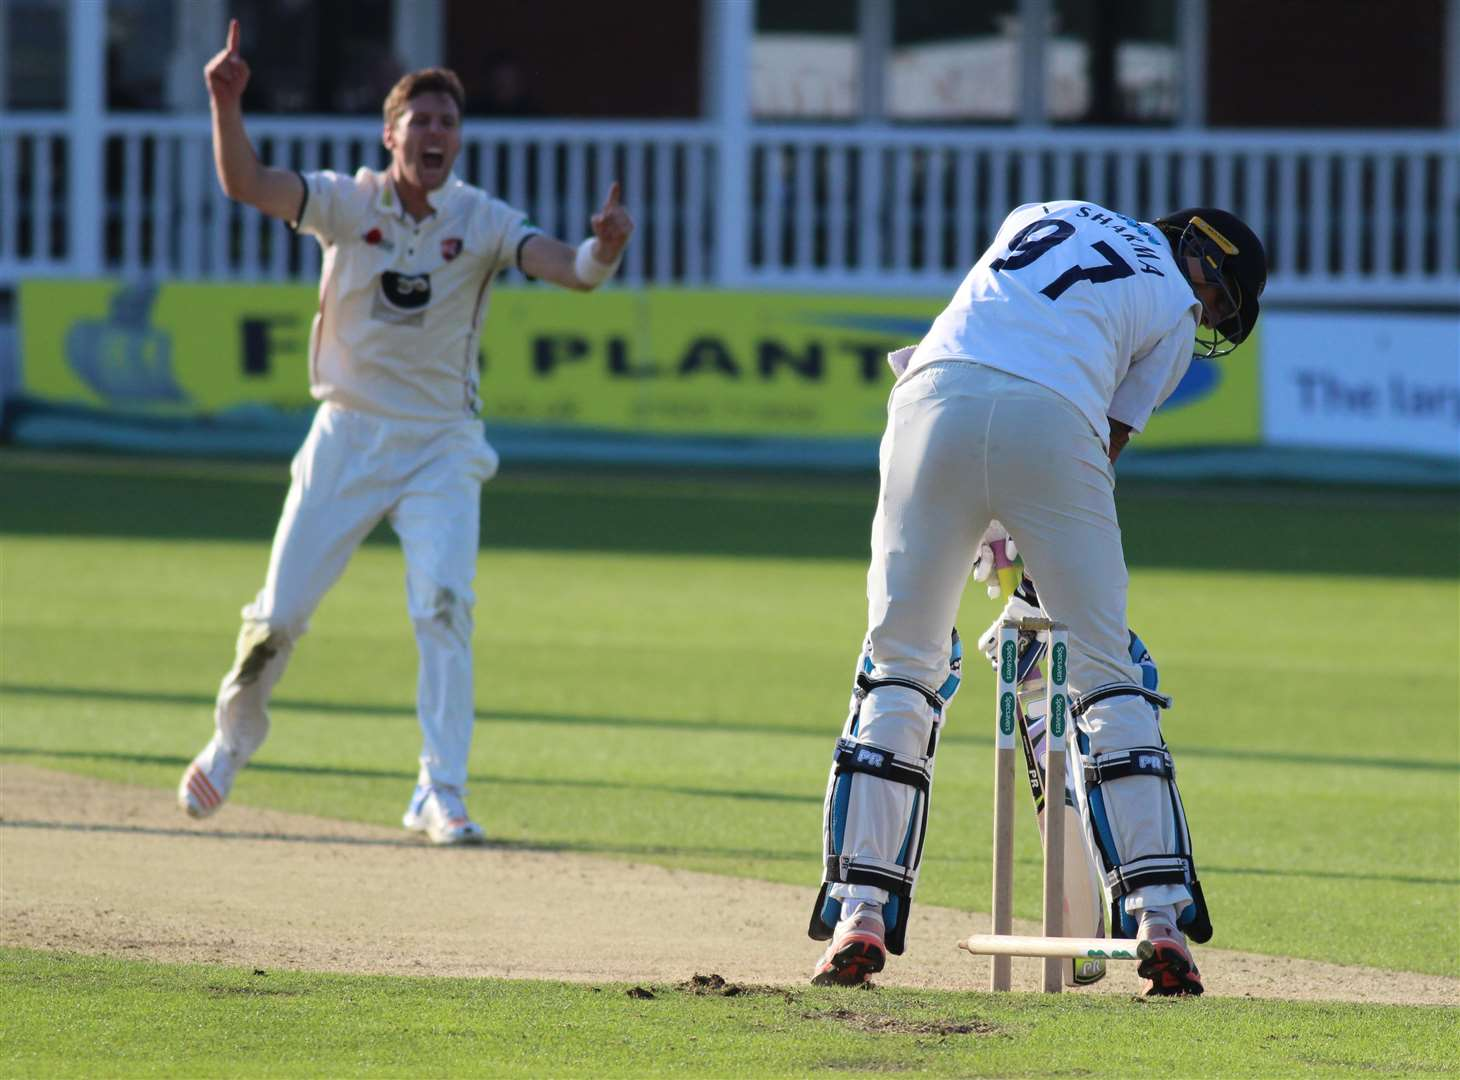 Kent's Matt Henry celebrates bowling Ishant Sharma to clinch victory over Sussex at Canterbry. Picture: Paul Allen